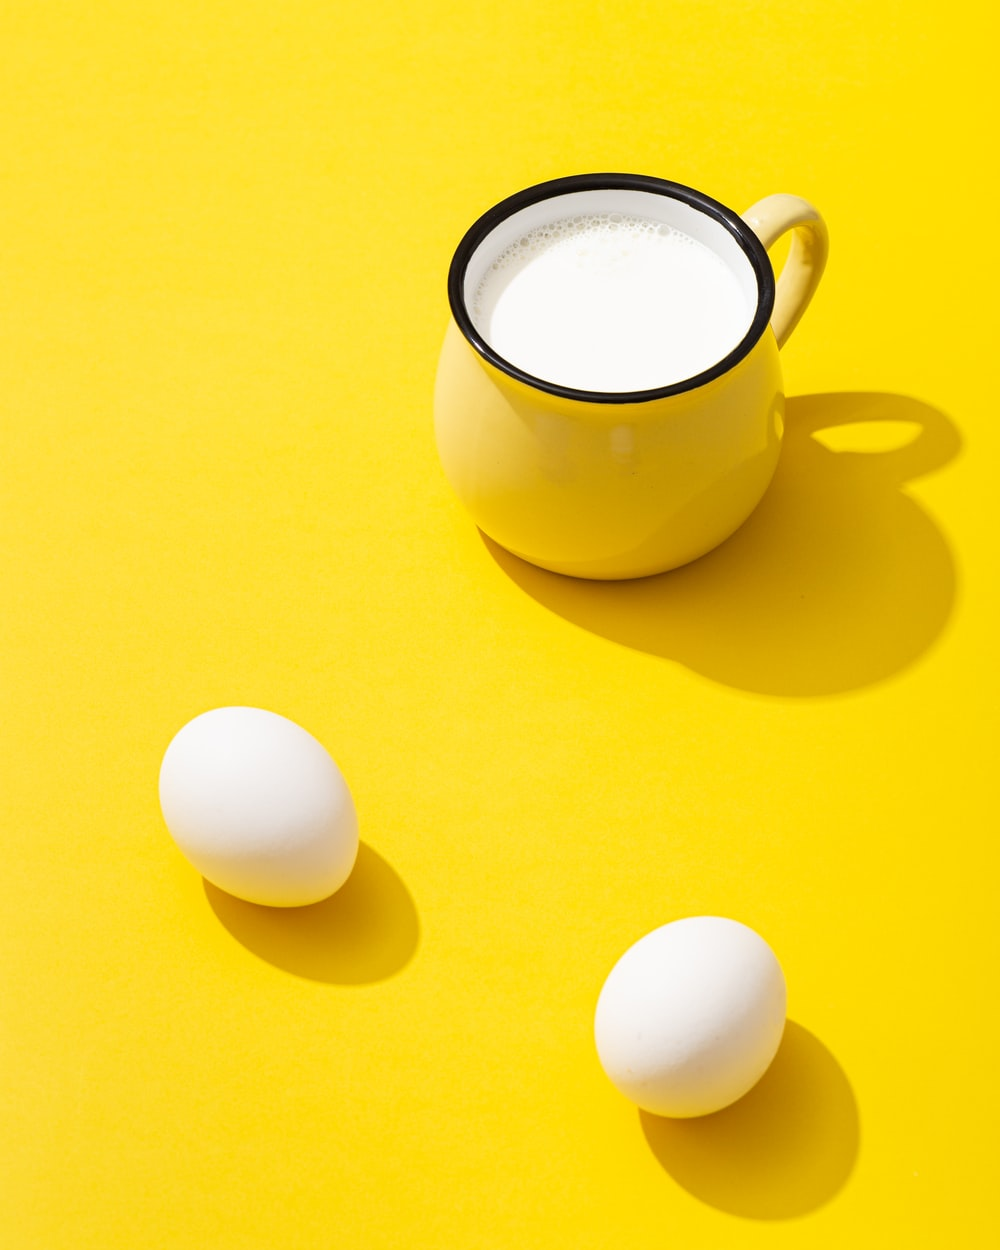 white ceramic mug with white egg